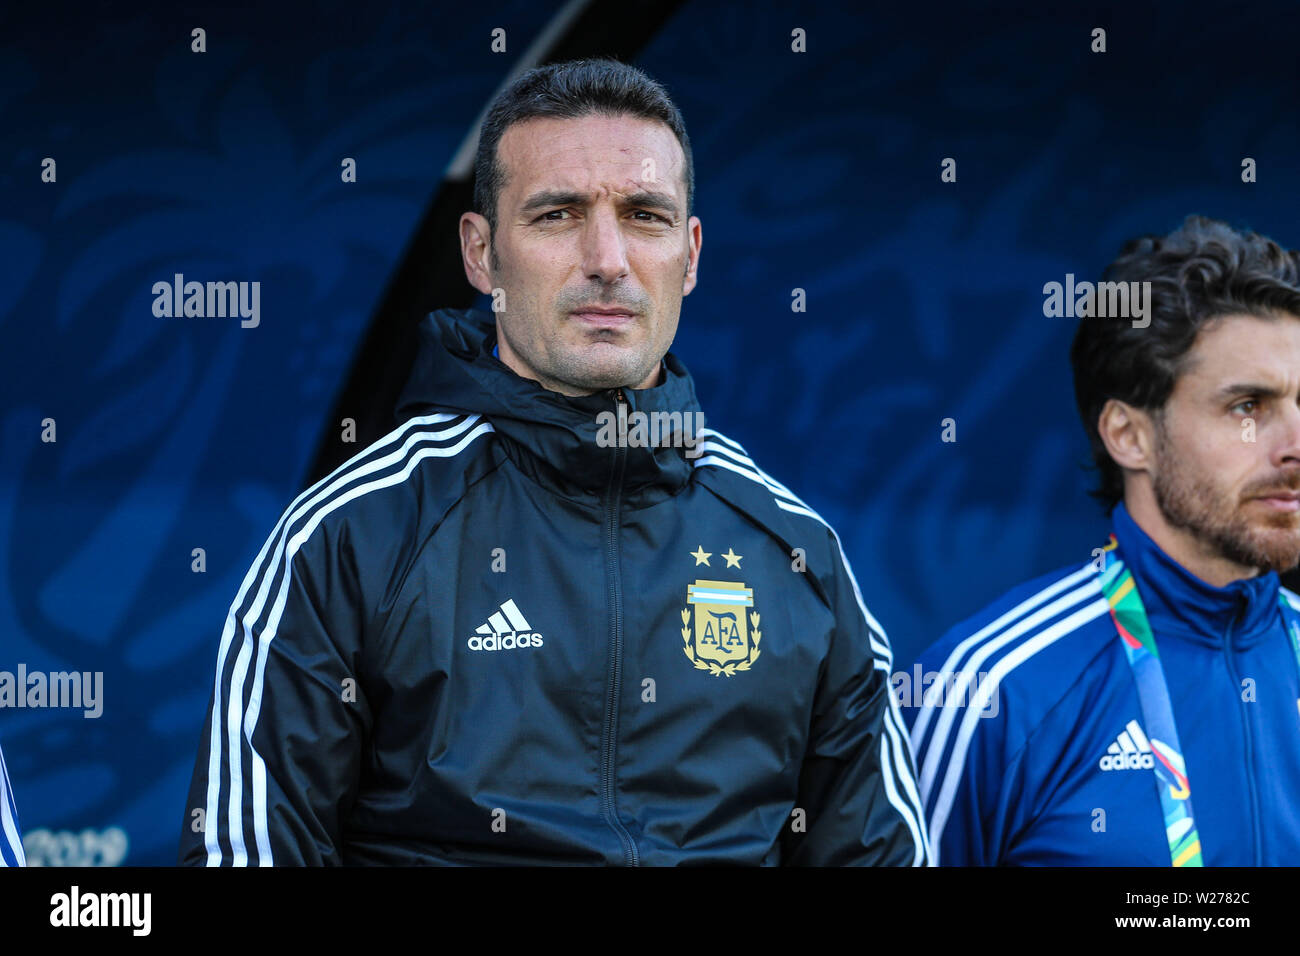 Brazil. 6th July, 2019. Dt Lionel Scaloni in the Game of the match between Argentina X Chile valid for third place dispute of Copa America 2019, in the Arena Corinthians, in São Paulo, this Saturday (06). Photo: Geraldo Bubniak Credit: Geraldo Bubniak/ZUMA Wire/Alamy Live News - Stock Image